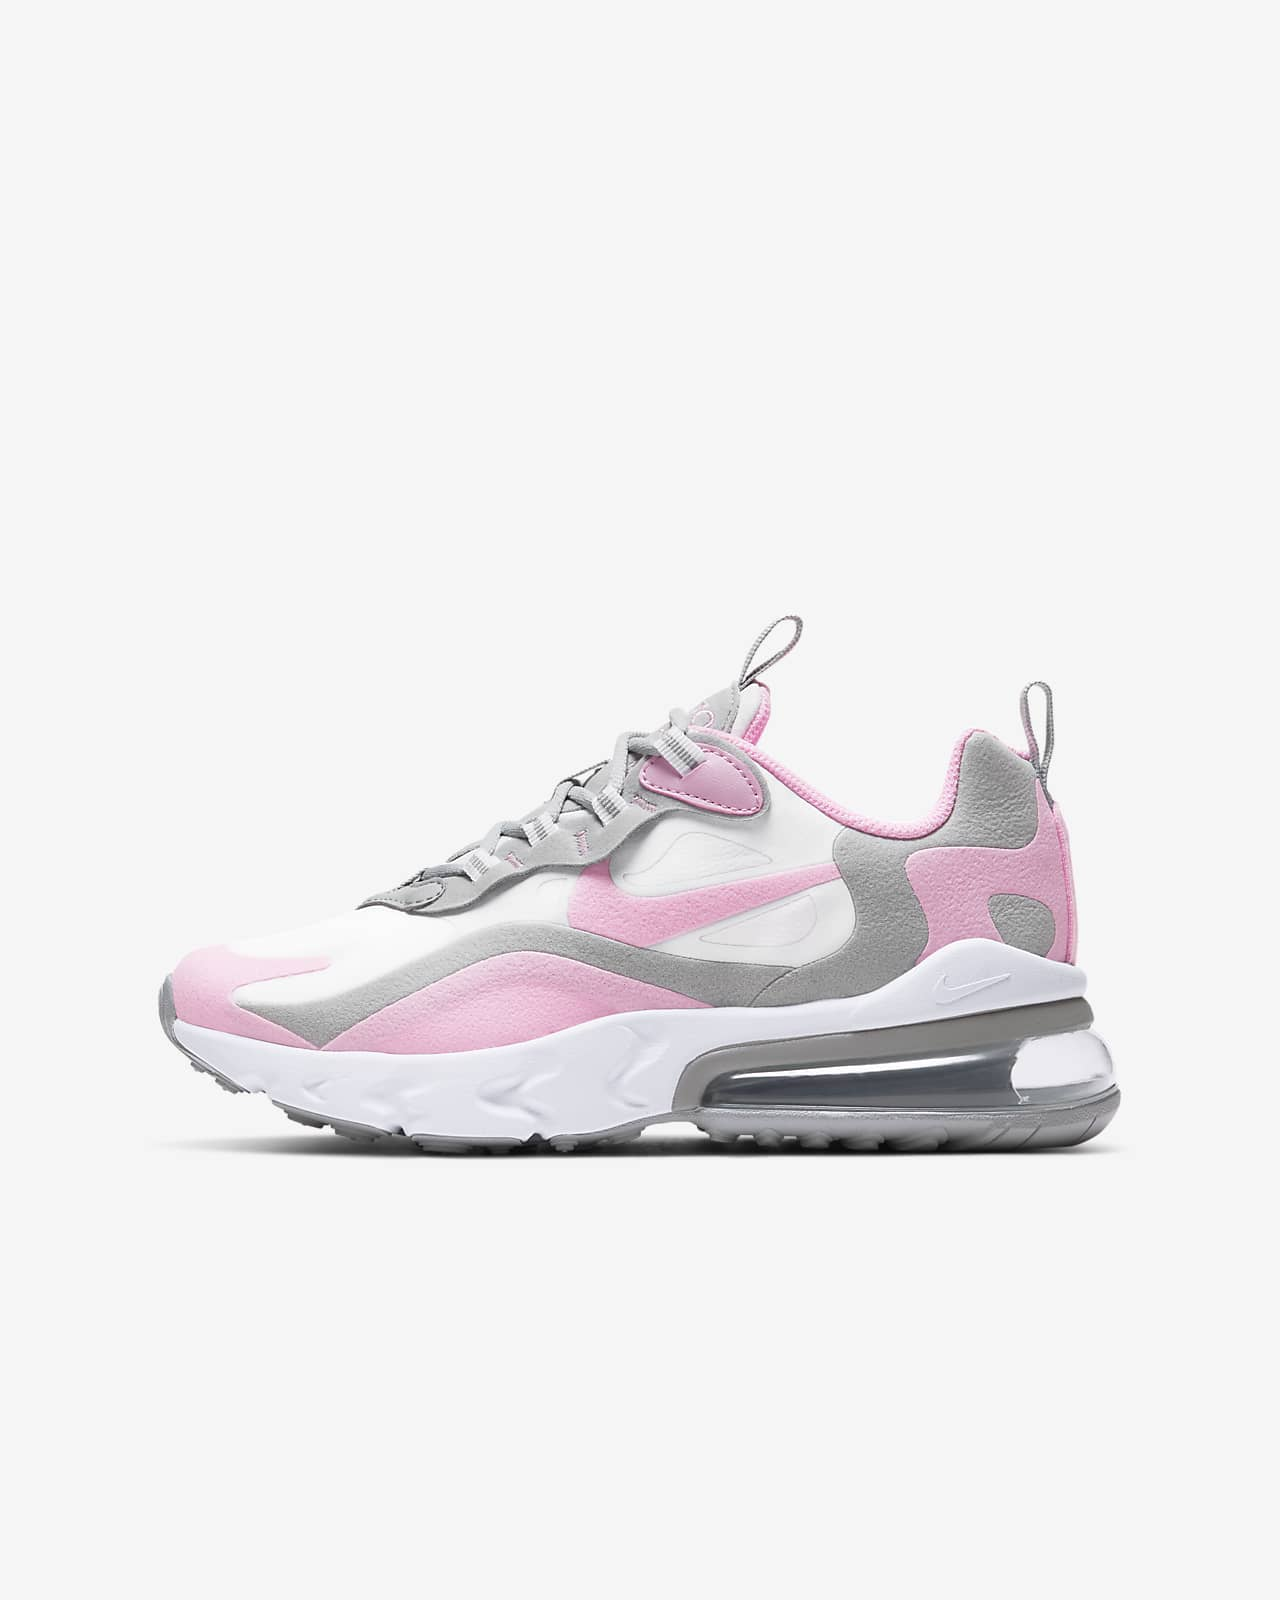 nike 270 enfant air max